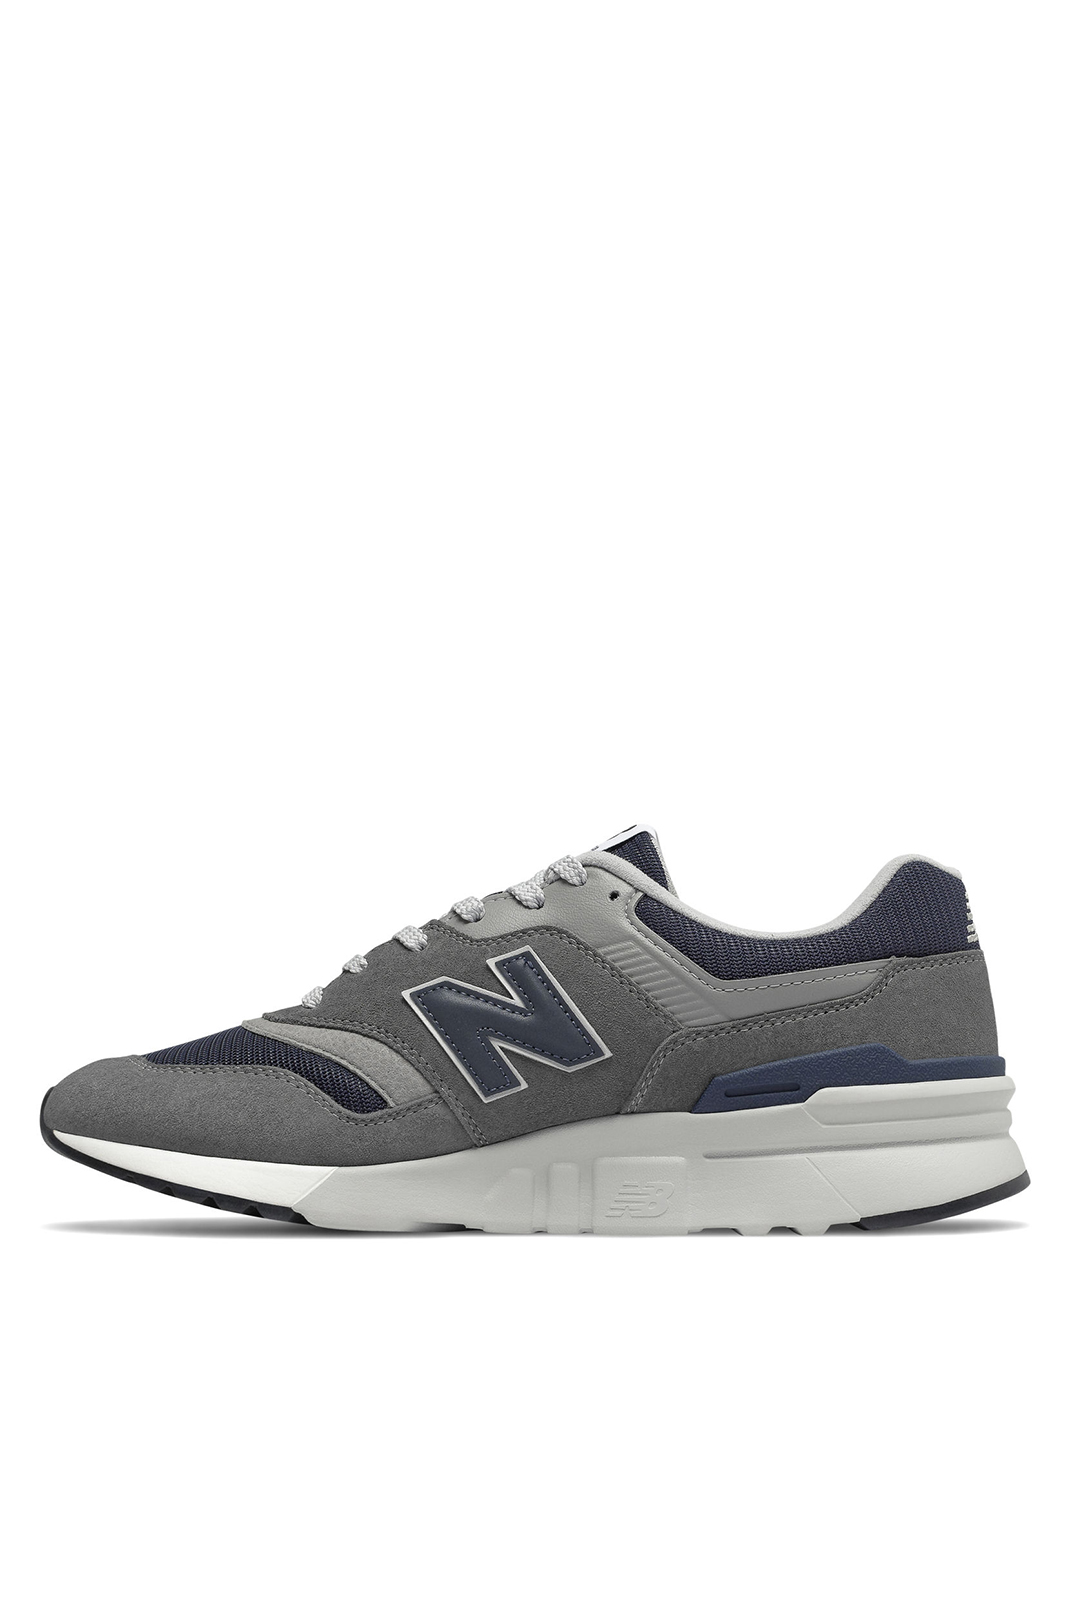 Baskets / Sport  New balance CM997HAX hax